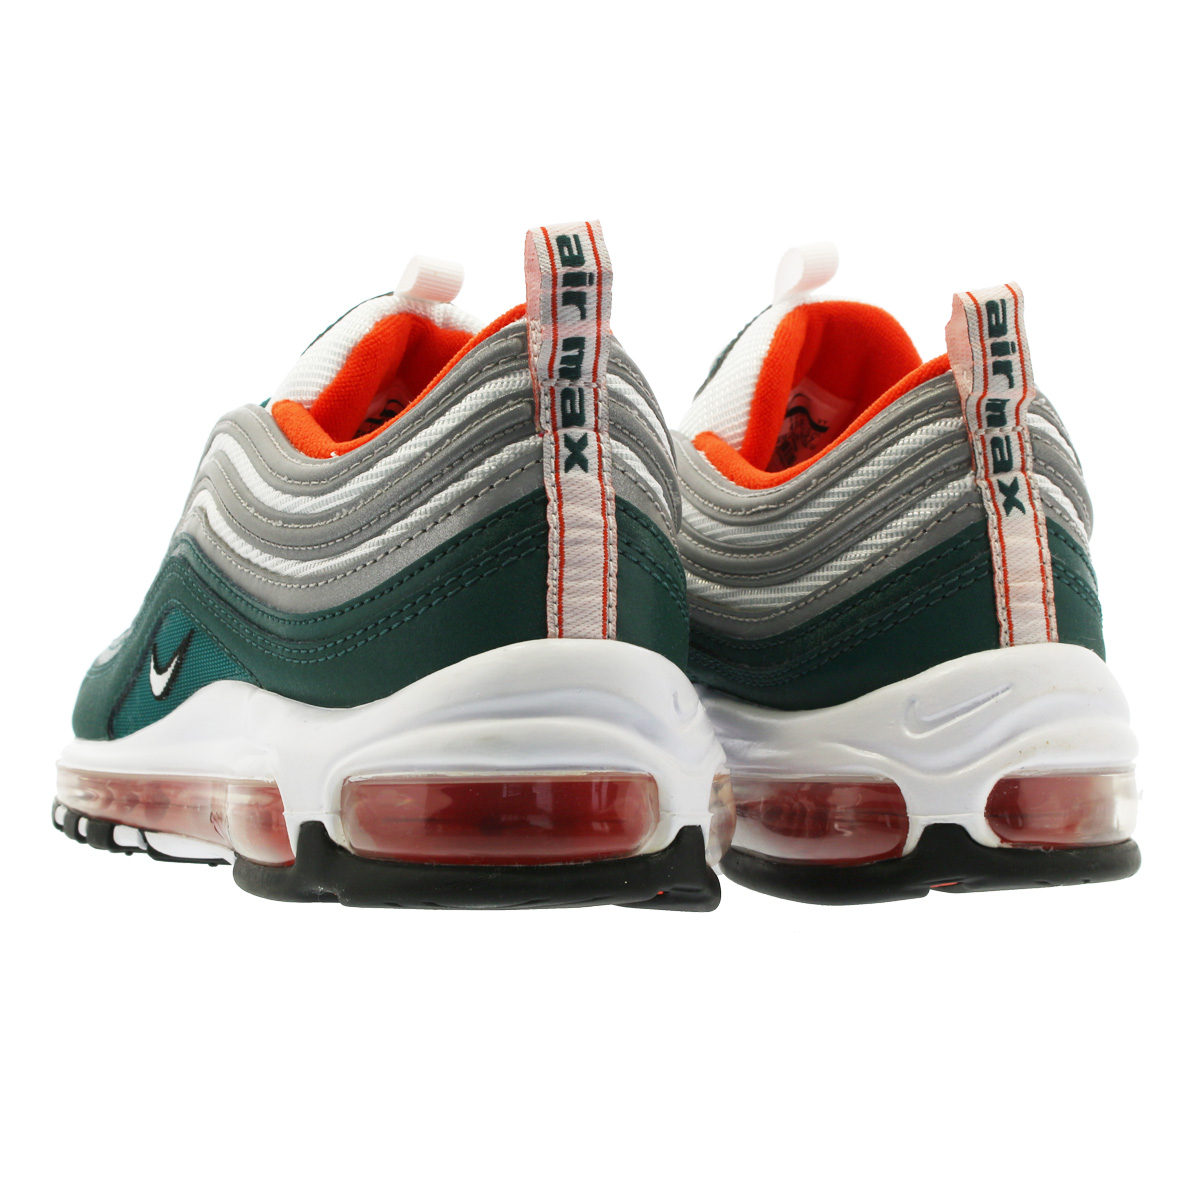 huge discount 2f7c9 50f42 NIKE AIR MAX 97 Kie Ney AMAX 97 RAINFOREST/WHITE/TEAM ORANGE/BLACK  921,826-300